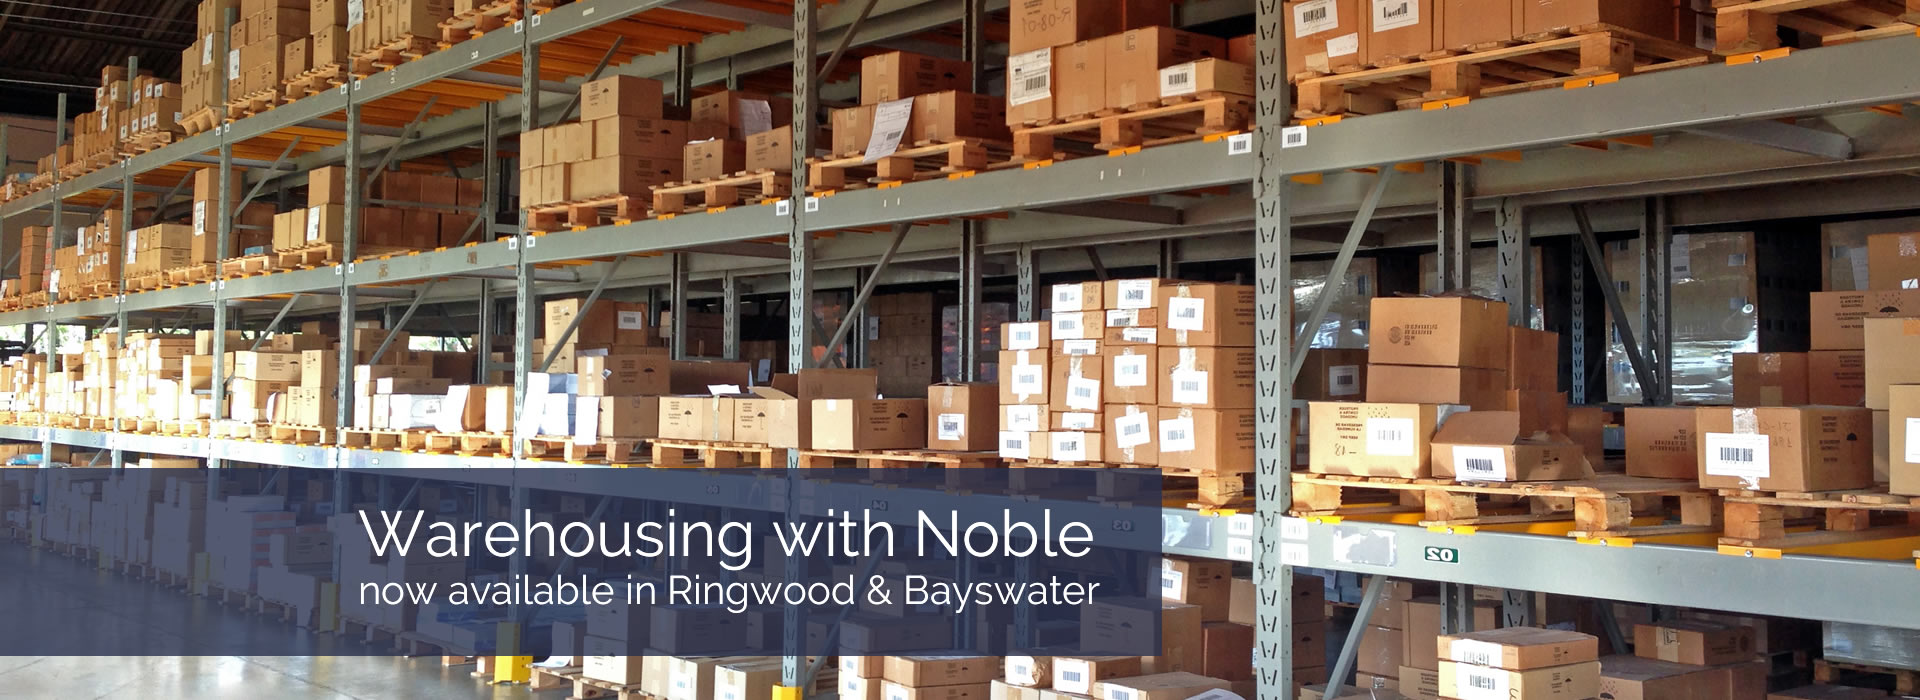 Warehousing with Noble now available in Ringwood and Bayswater